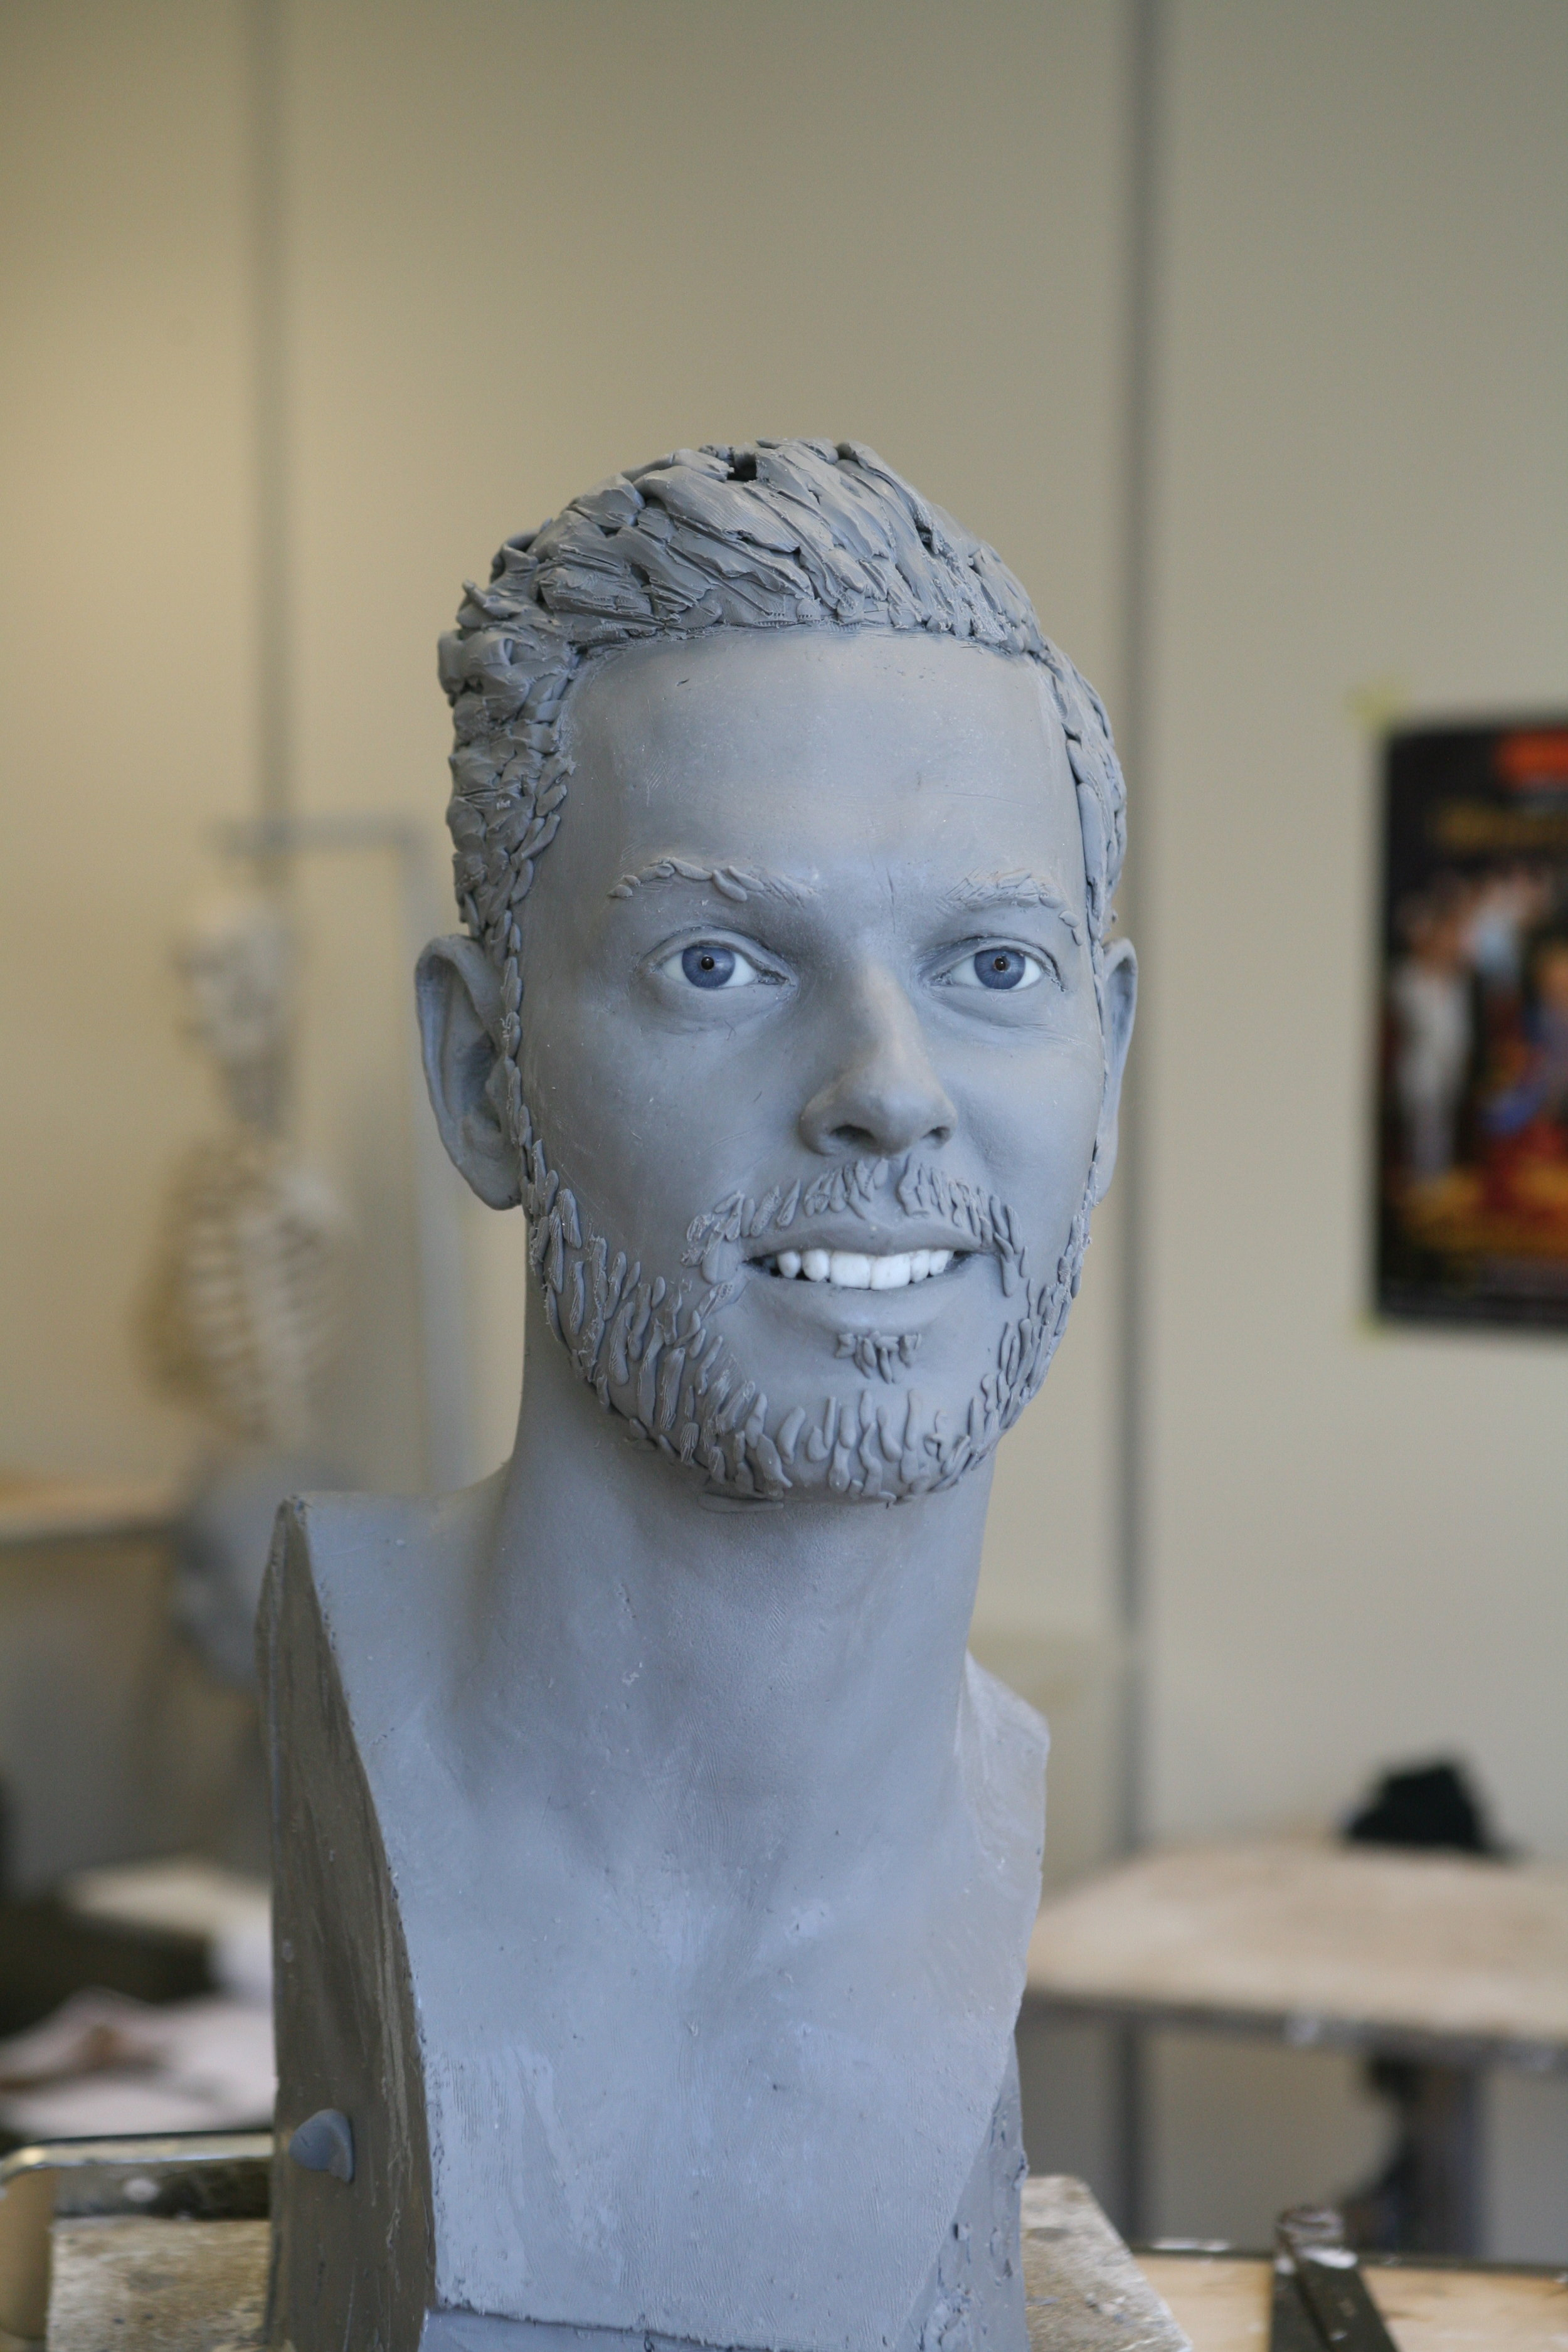 Clay sculpture by Eric Saint Chaffray - Matt Pokora - Credit Musée Grévin